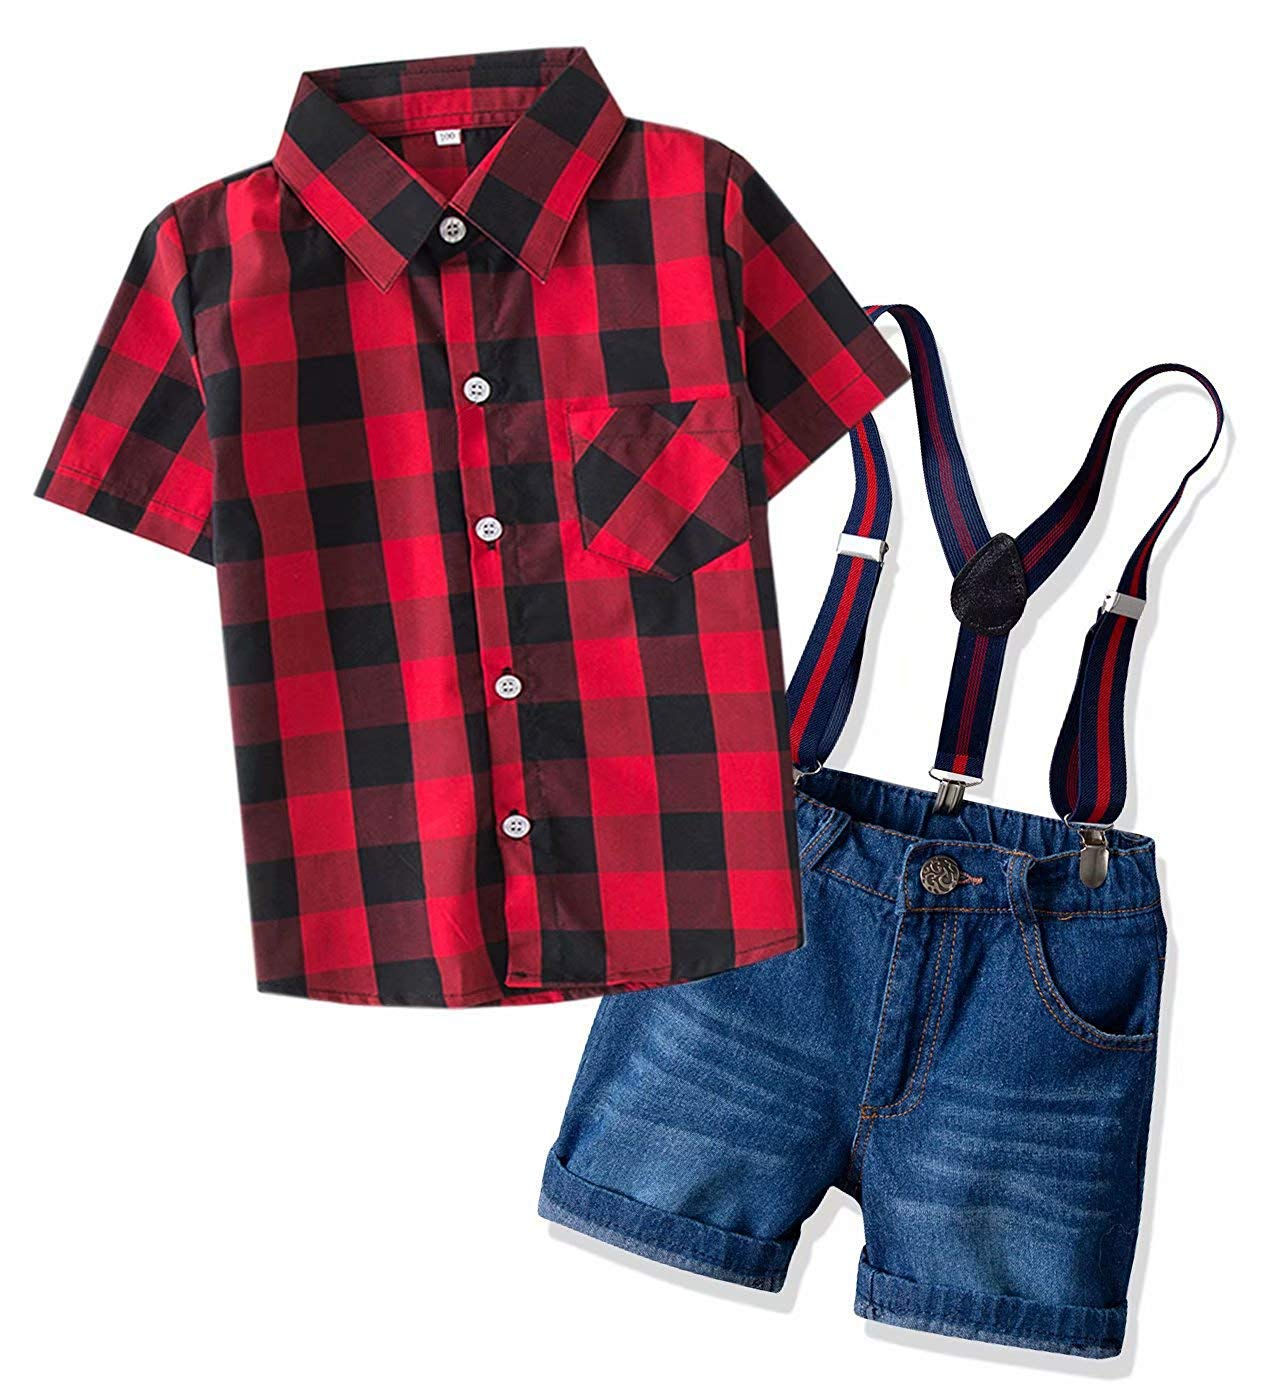 Boys Dress Clothes, Short Sleeves Button Down Plaid Dress Shirt + Suspender Denim Jeans Shorts Set Summer Outfit 2 Pieces Clothing, Red Black, 18-24 Months = Tag 90